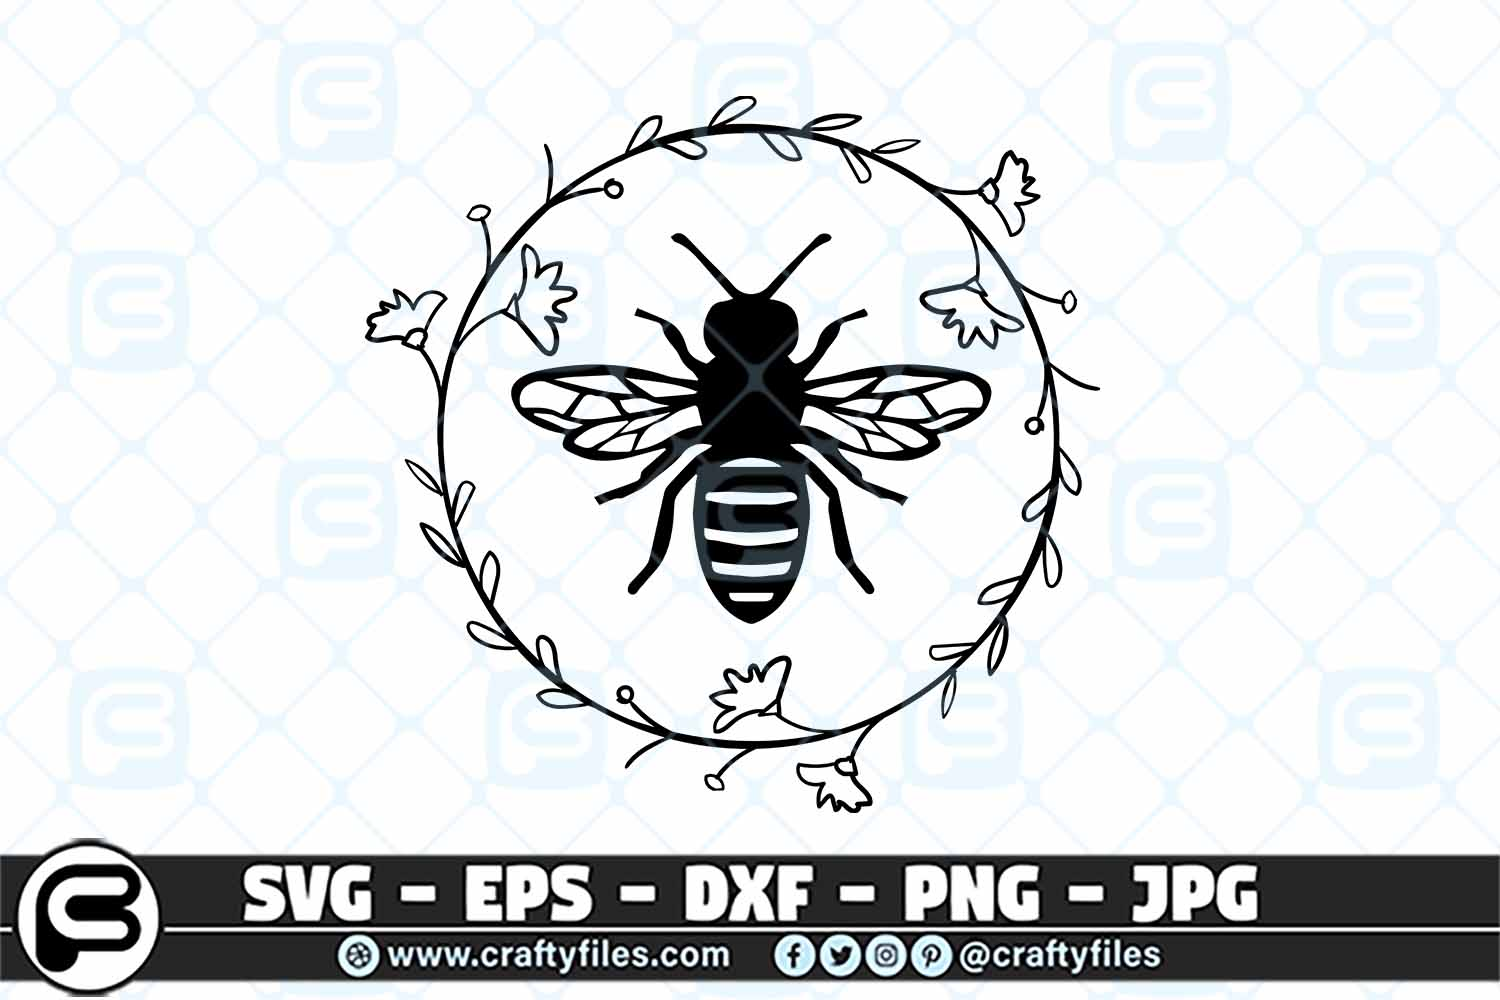 Download Free Bee Arounded Graphic By Crafty Files Creative Fabrica for Cricut Explore, Silhouette and other cutting machines.